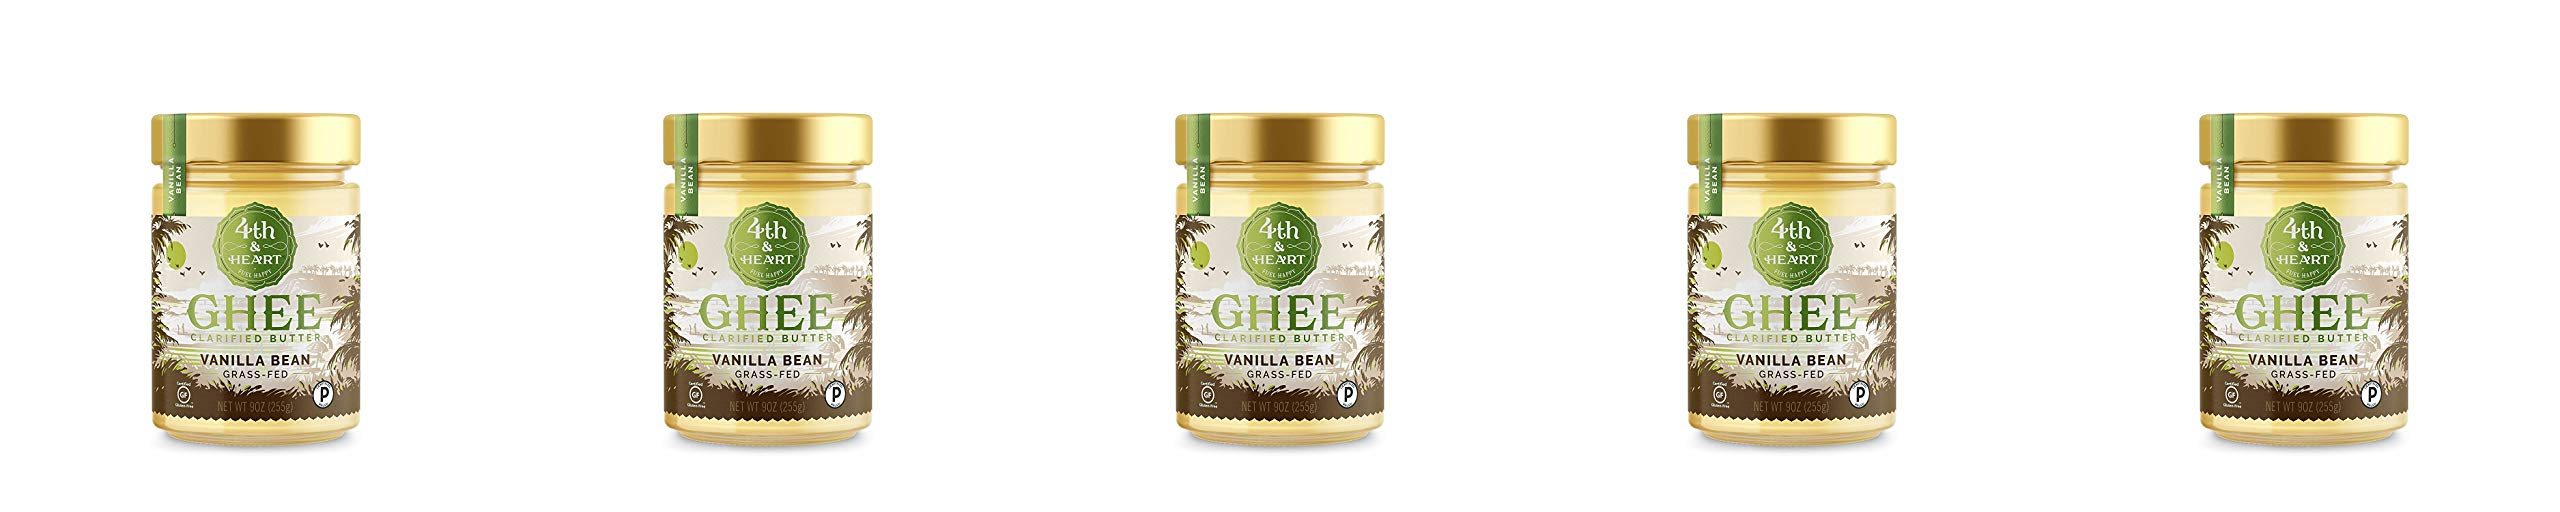 Vanilla Bean Grass-Fed Ghee Butter by 4th & Heart, 9 Ounce, Pasture Raised, Non-GMO, Lactose Free, Certified Paleo, Keto-Friendly - 5 Pack by 4th & Heart (Image #1)